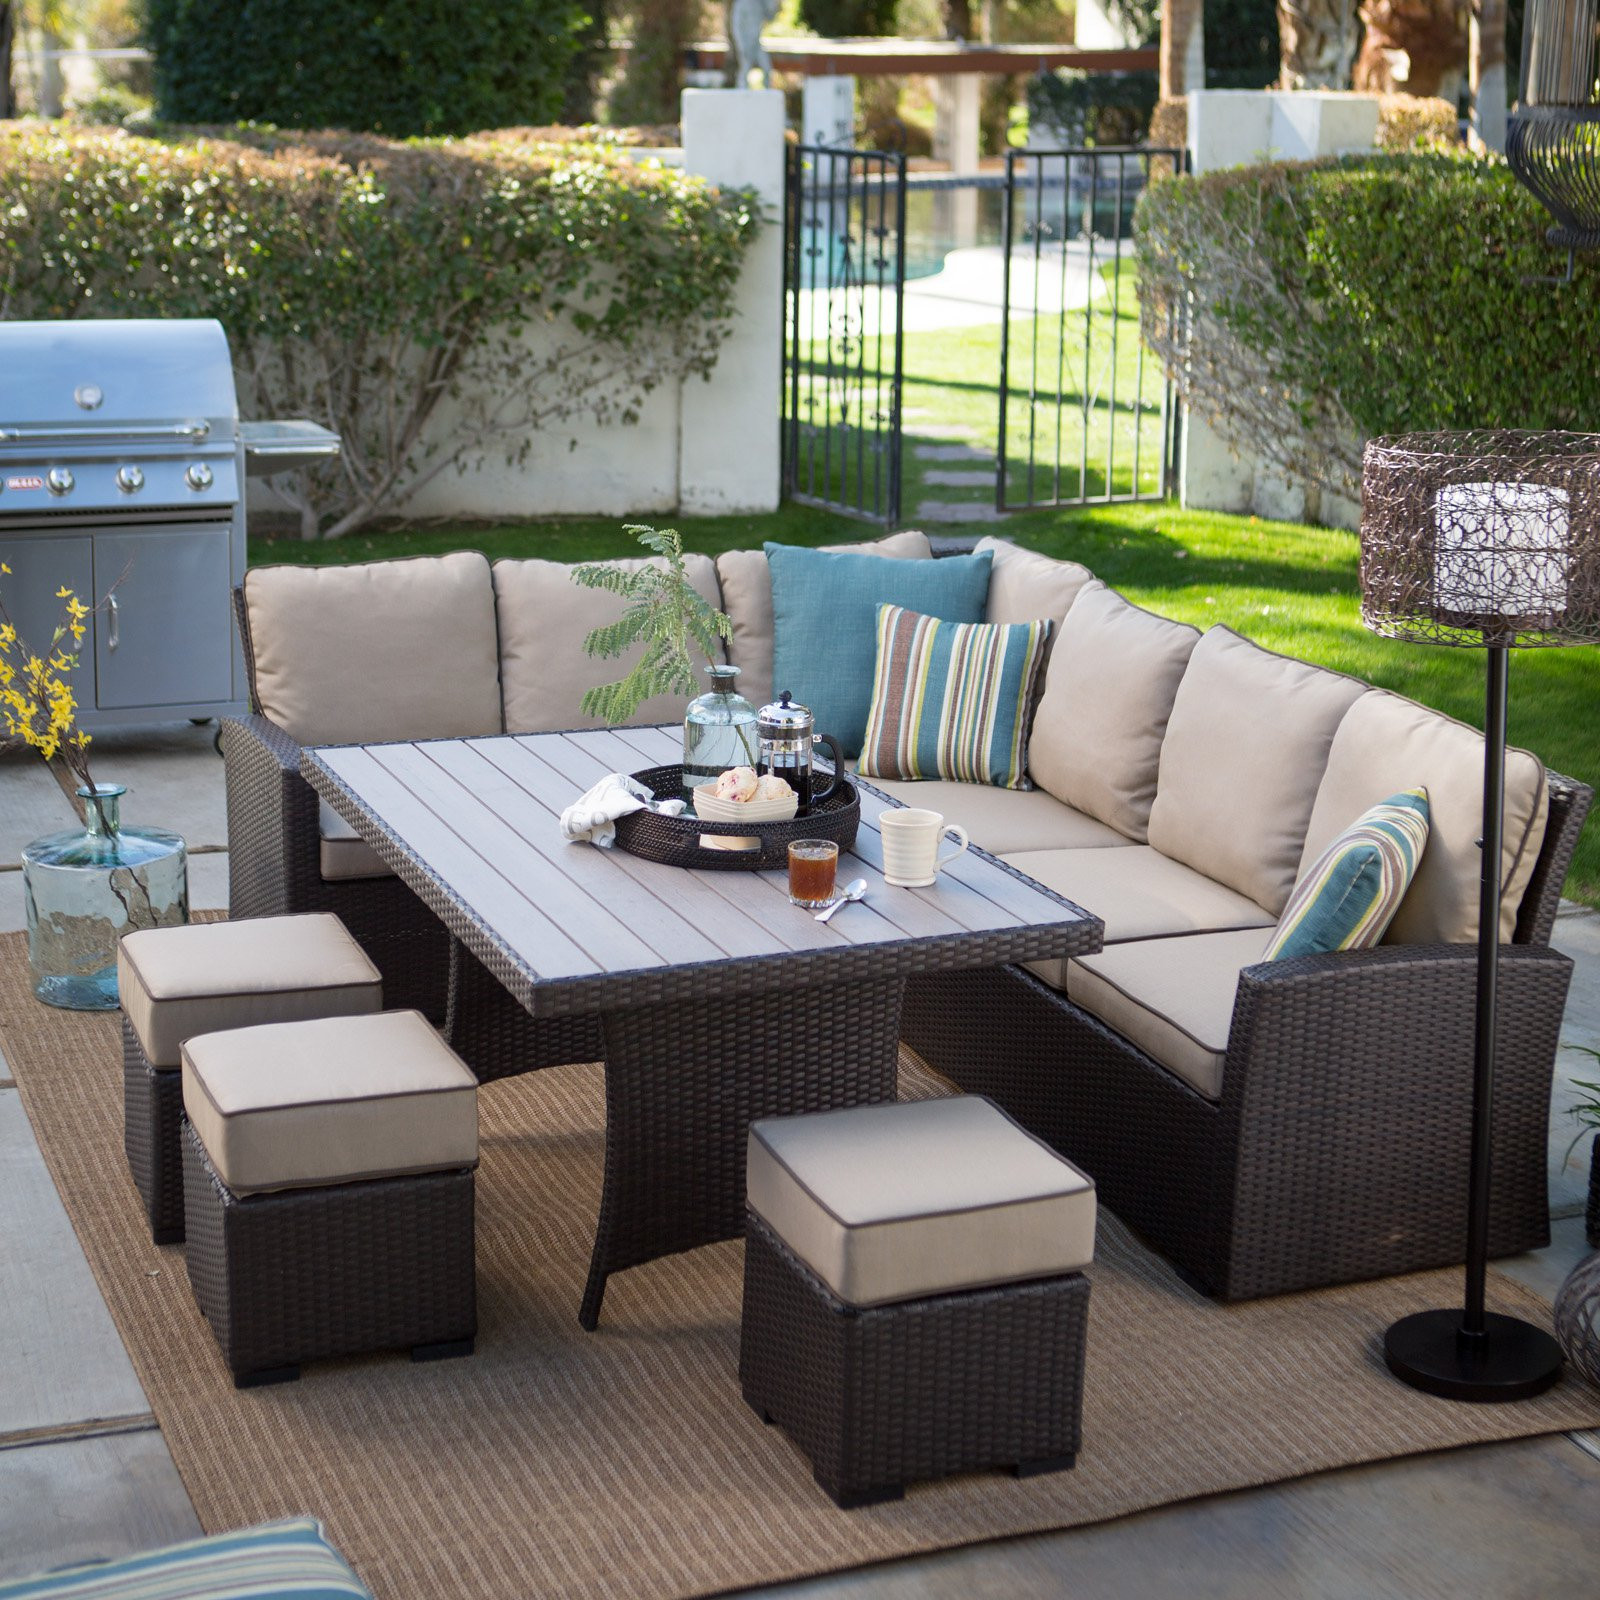 Best ideas about Patio Furniture Set . Save or Pin Belham Living Monticello All Weather Wicker Sofa Sectional Now.